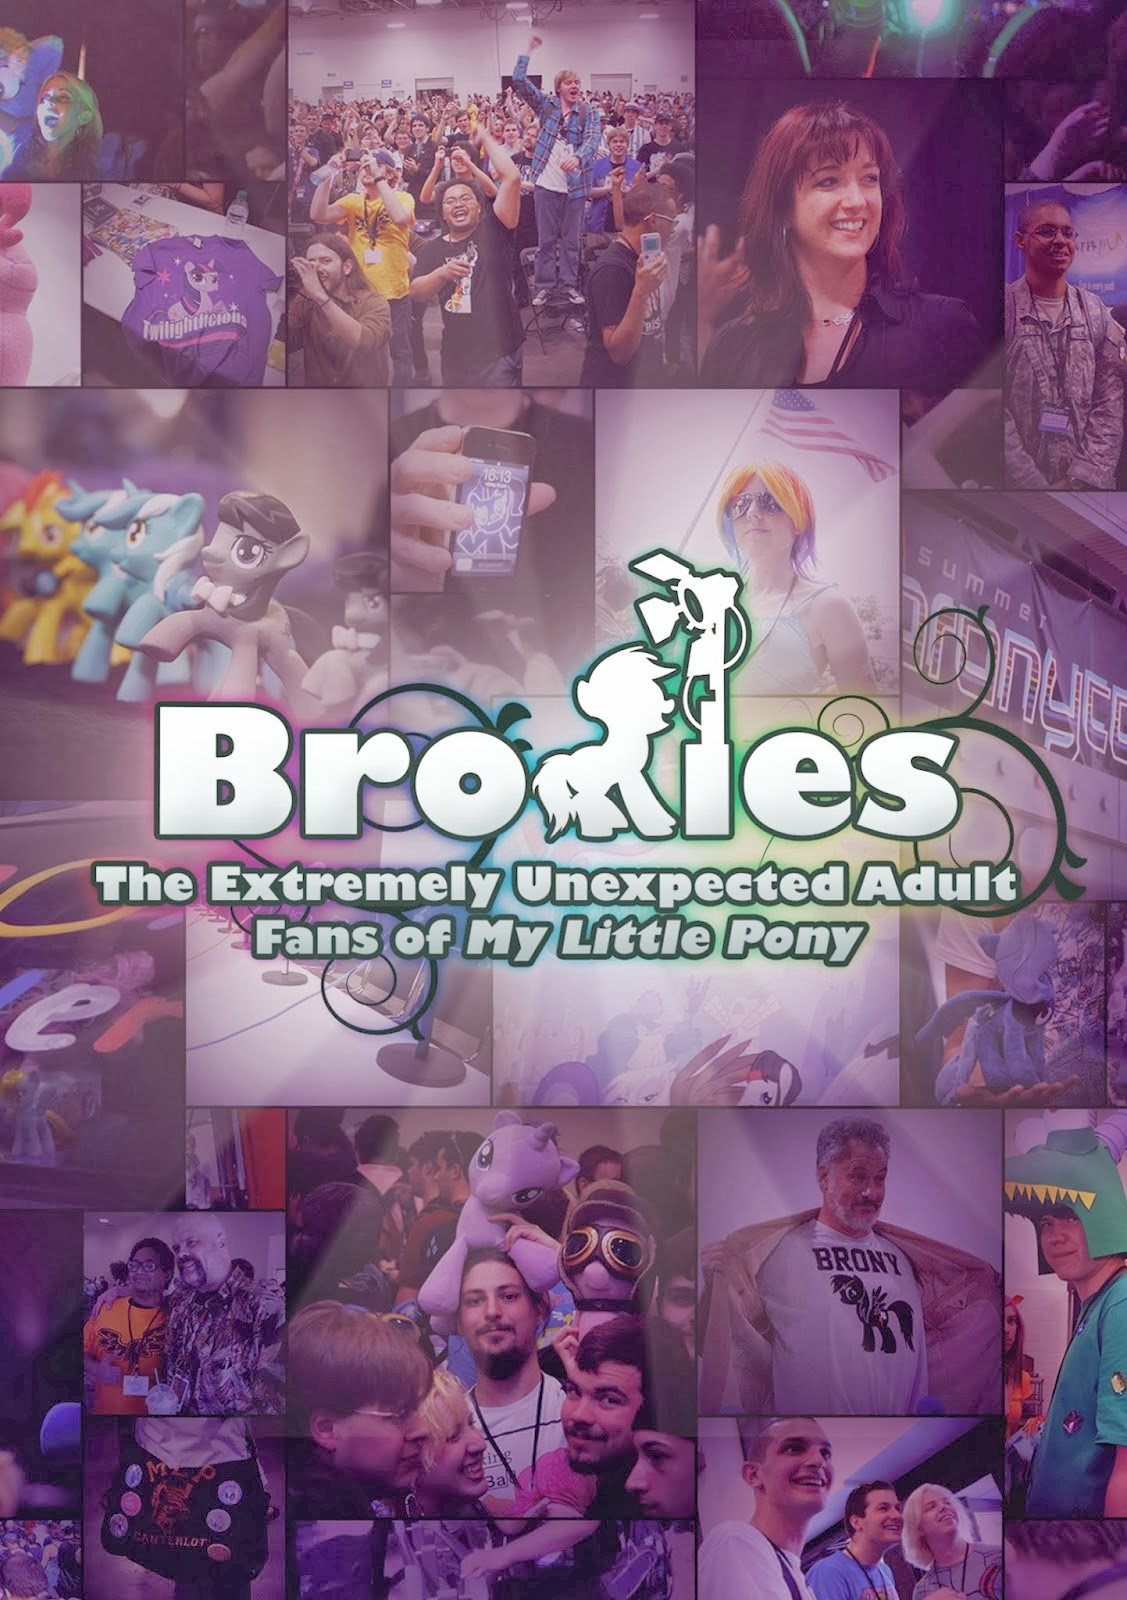 Bronies The Extremely Unexpected Adult Fans Of My Little Pony Formerly Titled As Brony Con Documentary Is A 2012 Film Centring On